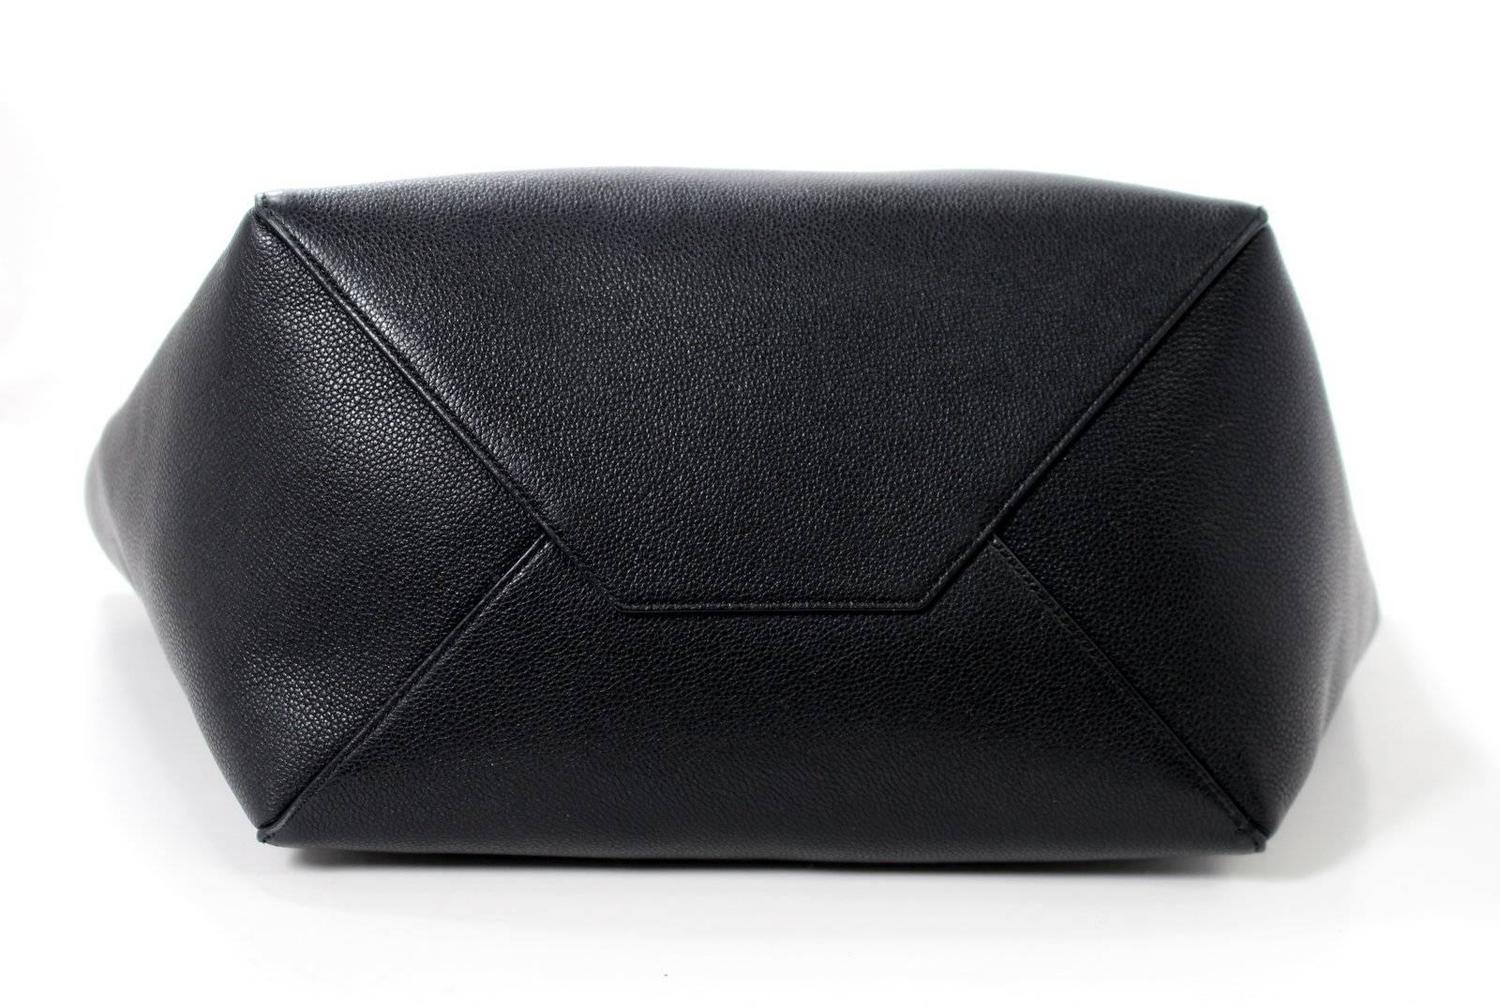 celine purse cost - Celine Black Calfskin Cabas Phantom Tote Bag at 1stdibs